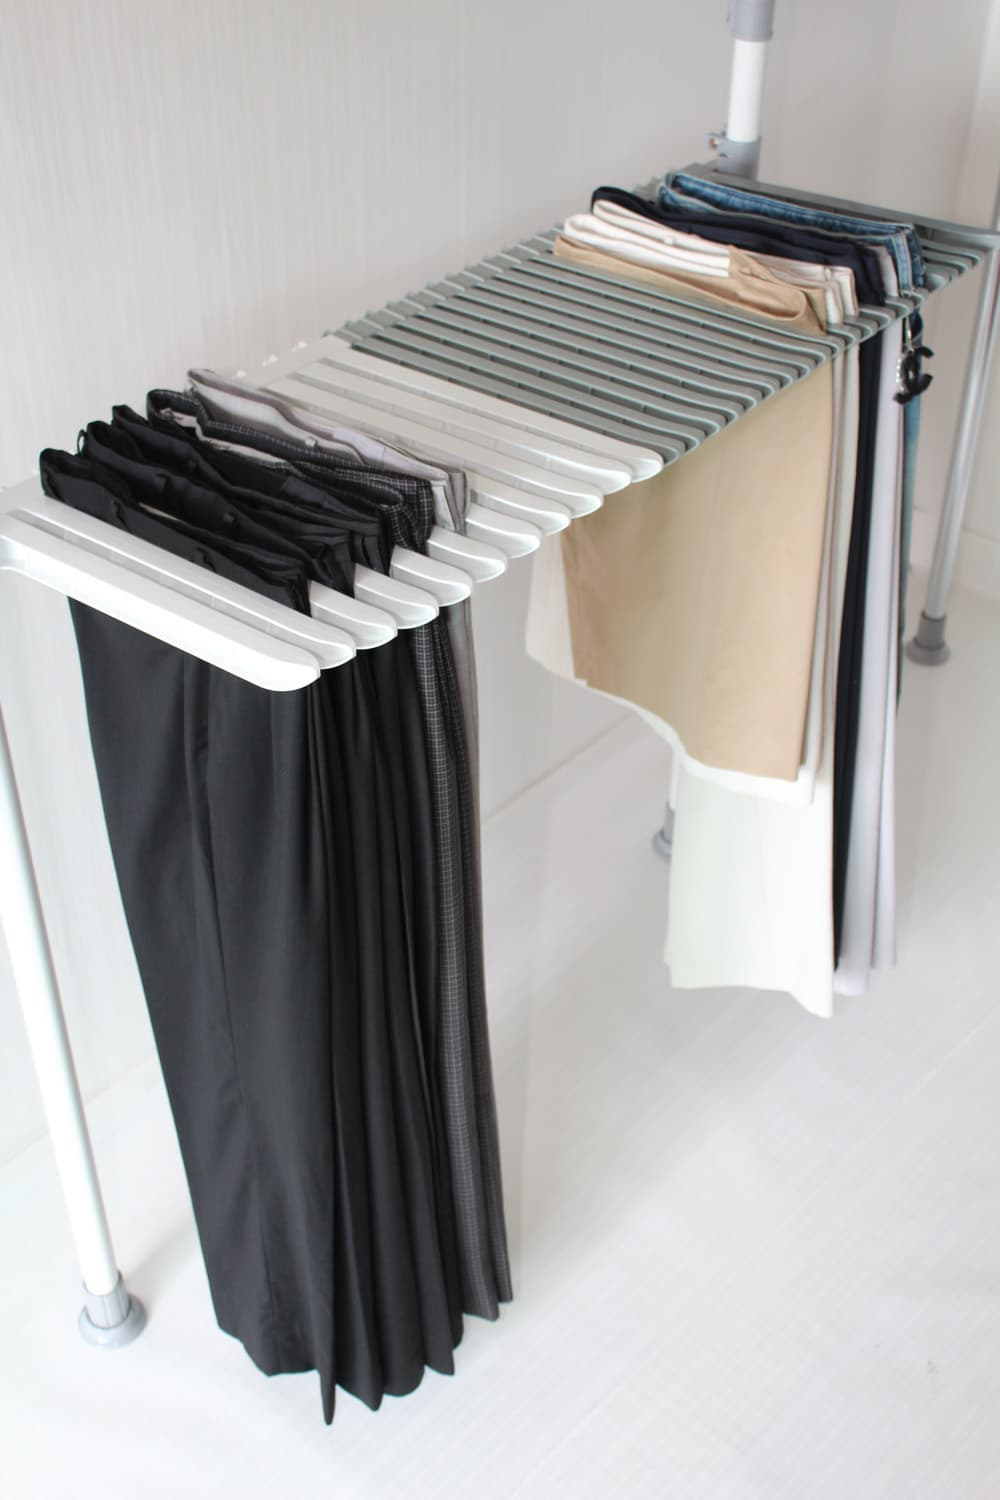 Clipless Pants Hanger Rack From Rackdiy B2b Marketplace